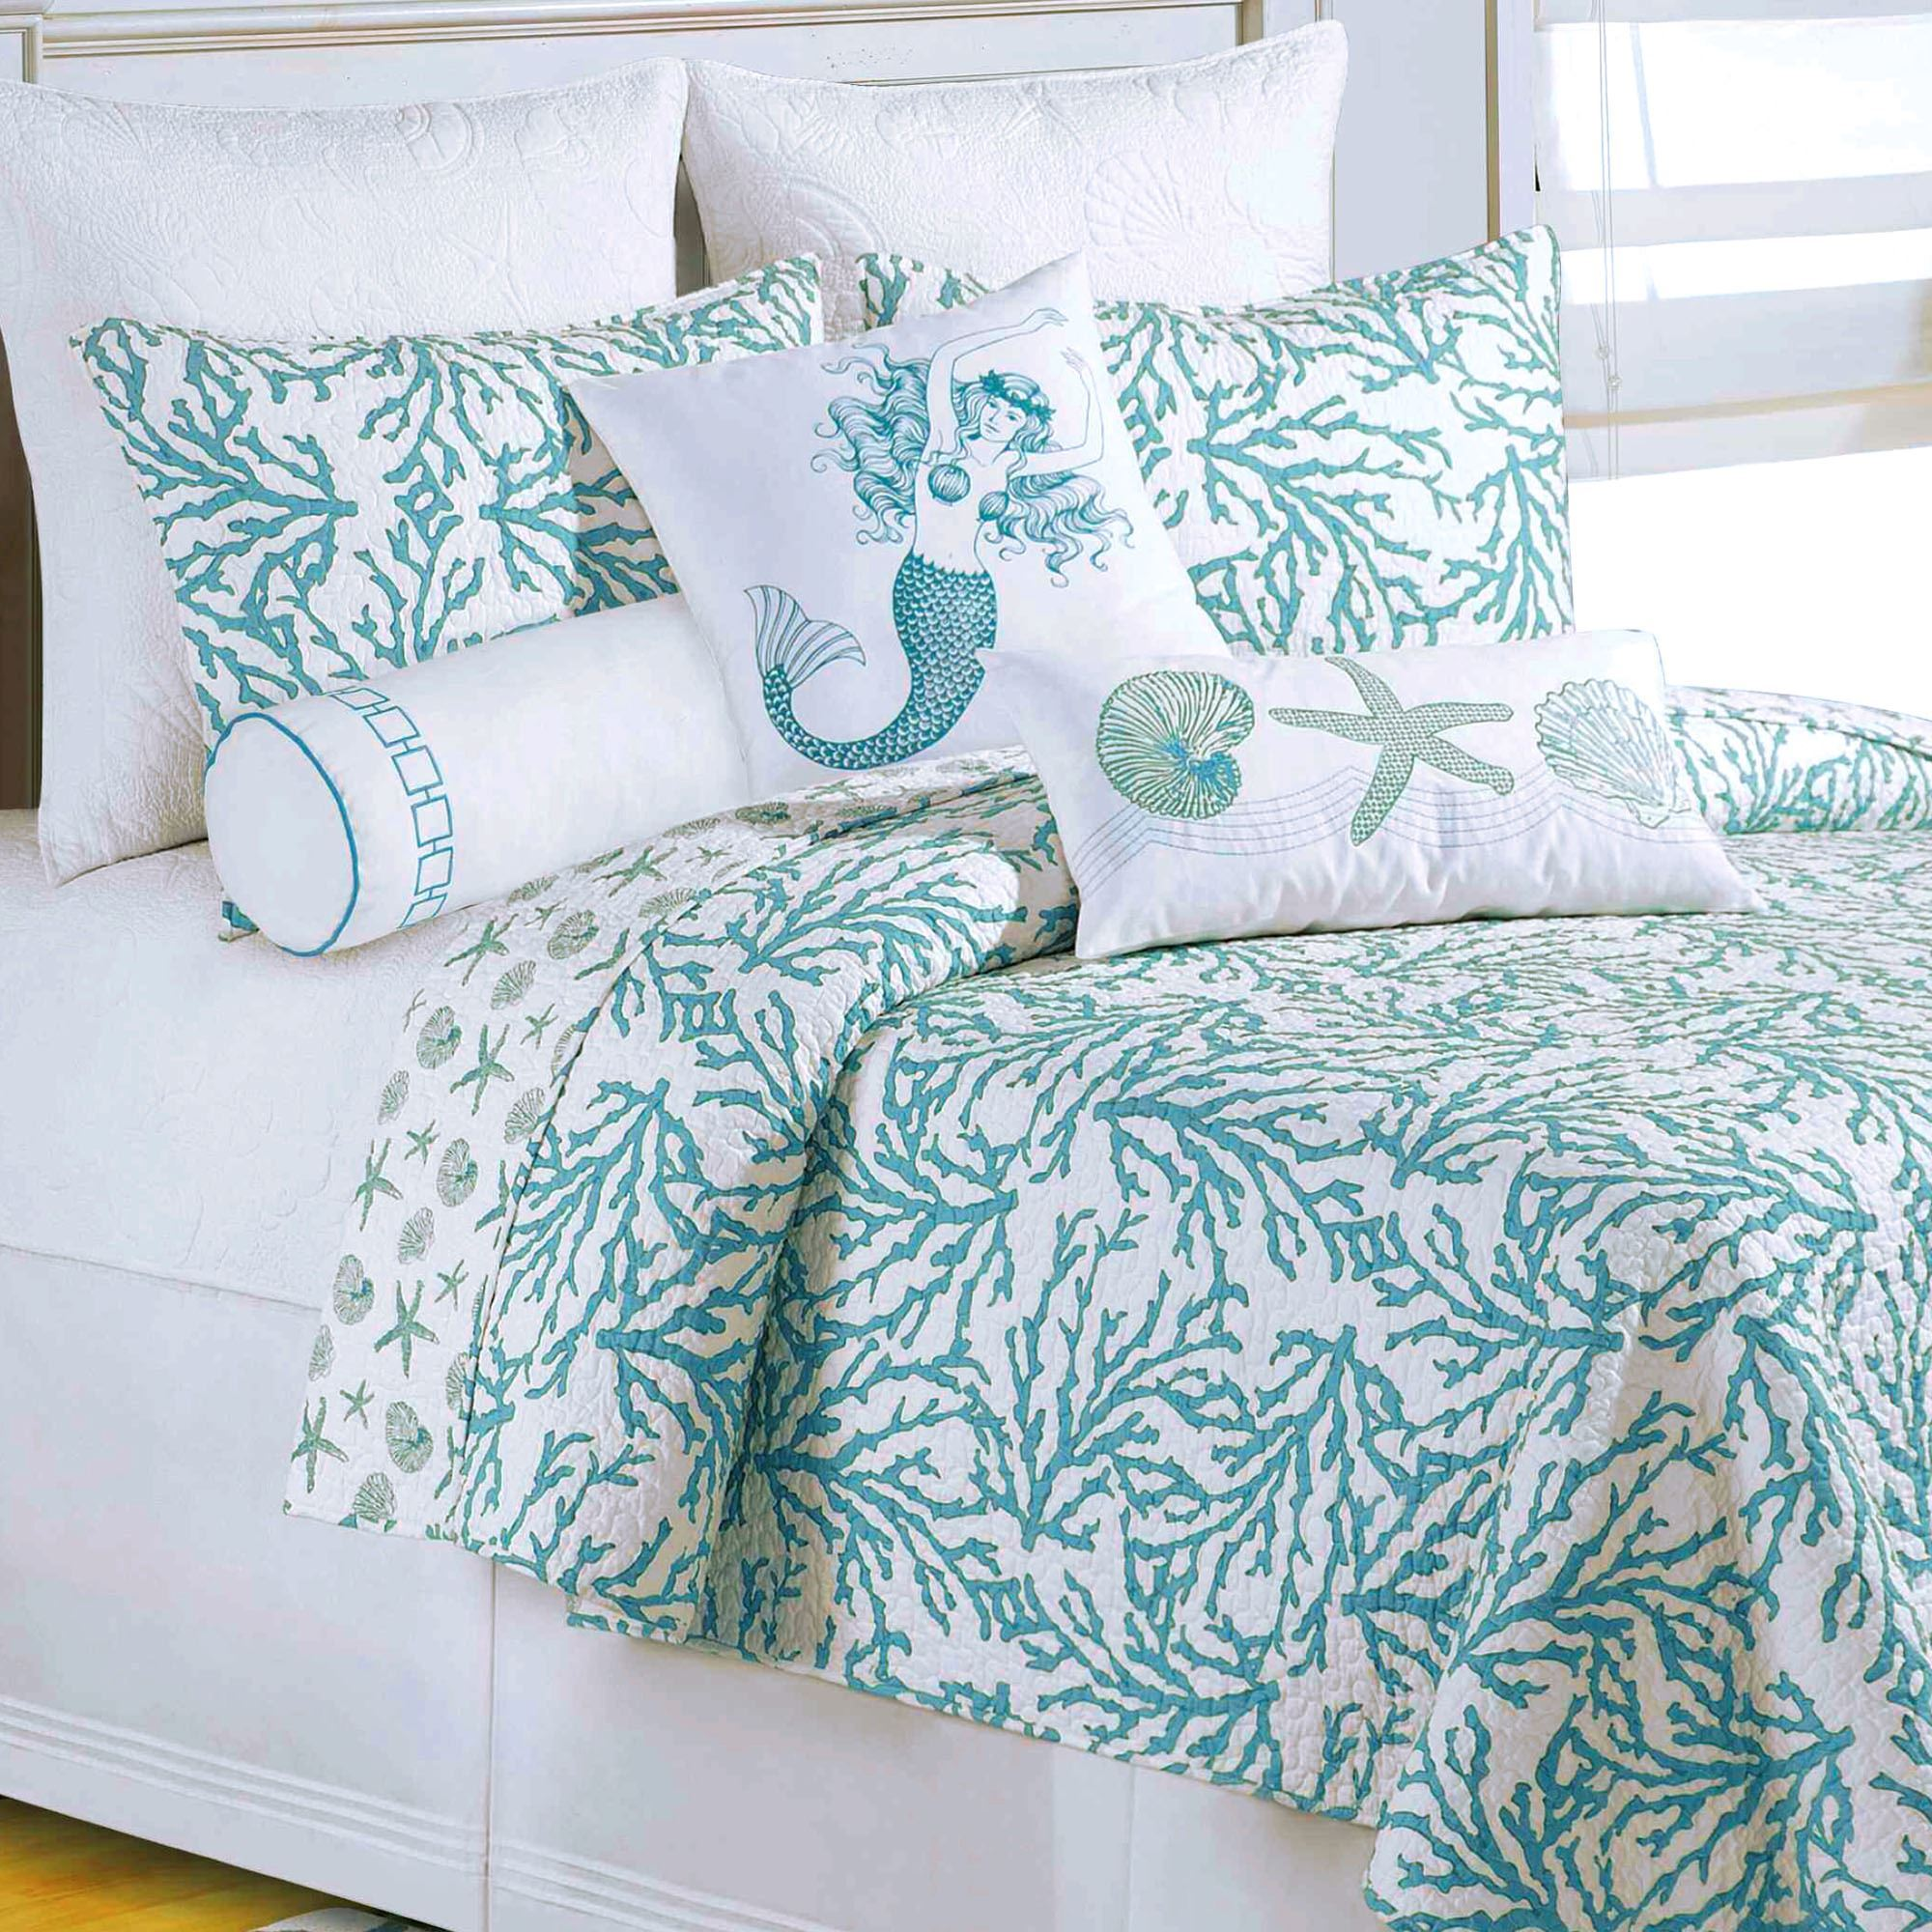 Cora Turquoise Coral Coastal Quilt Bedding : coral quilt - Adamdwight.com